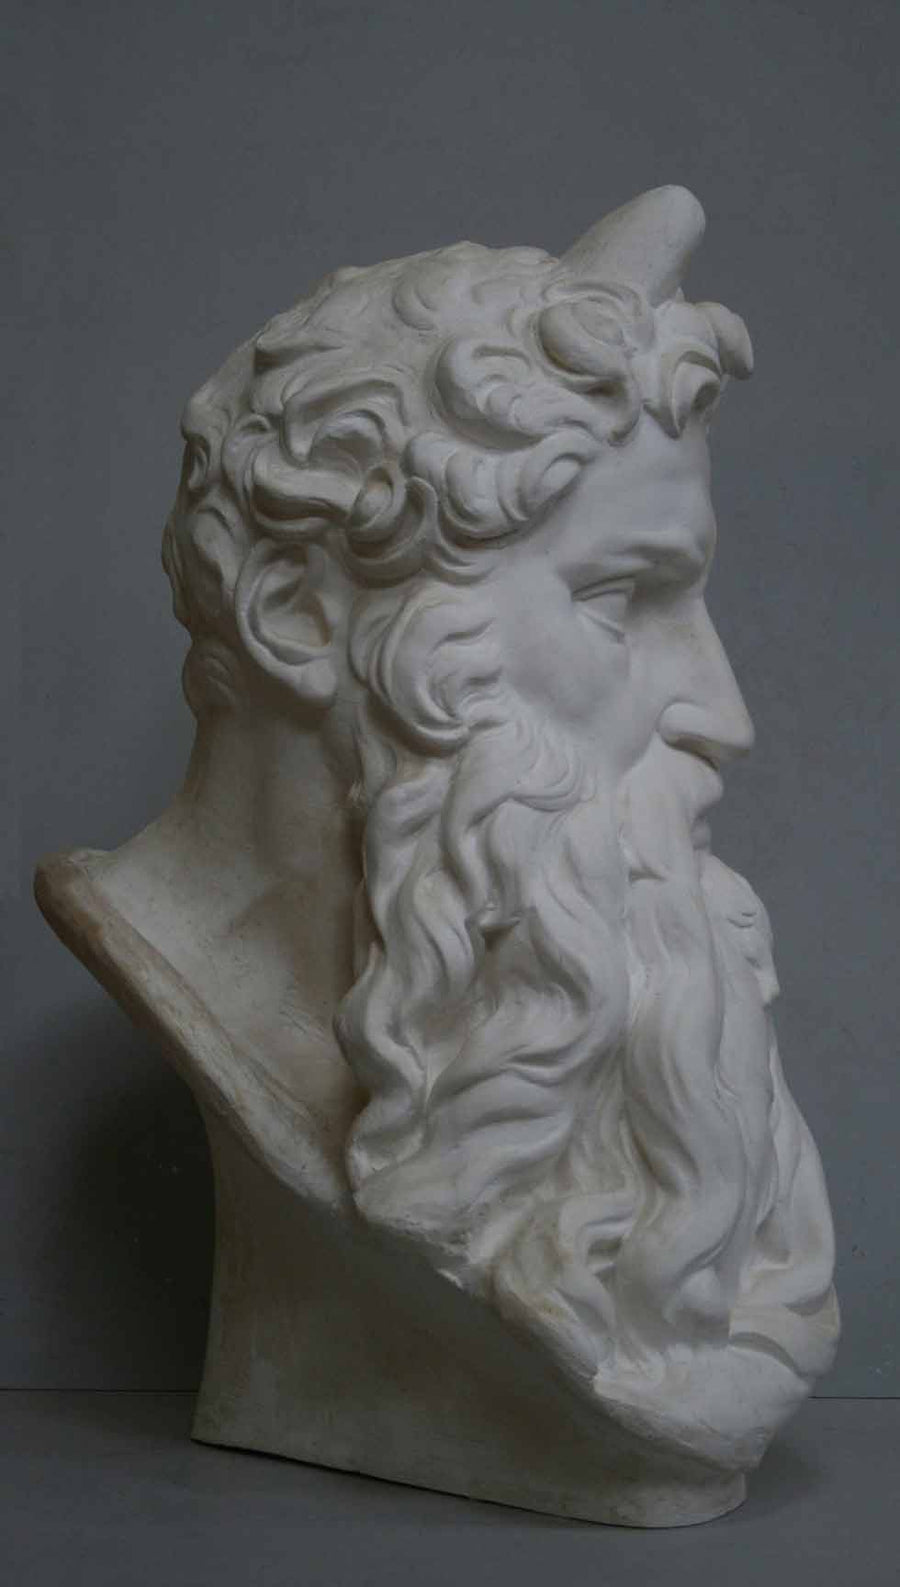 photo of plaster cast bust of man, namely Moses, with curly hair and so-called horns and long beard on gray background